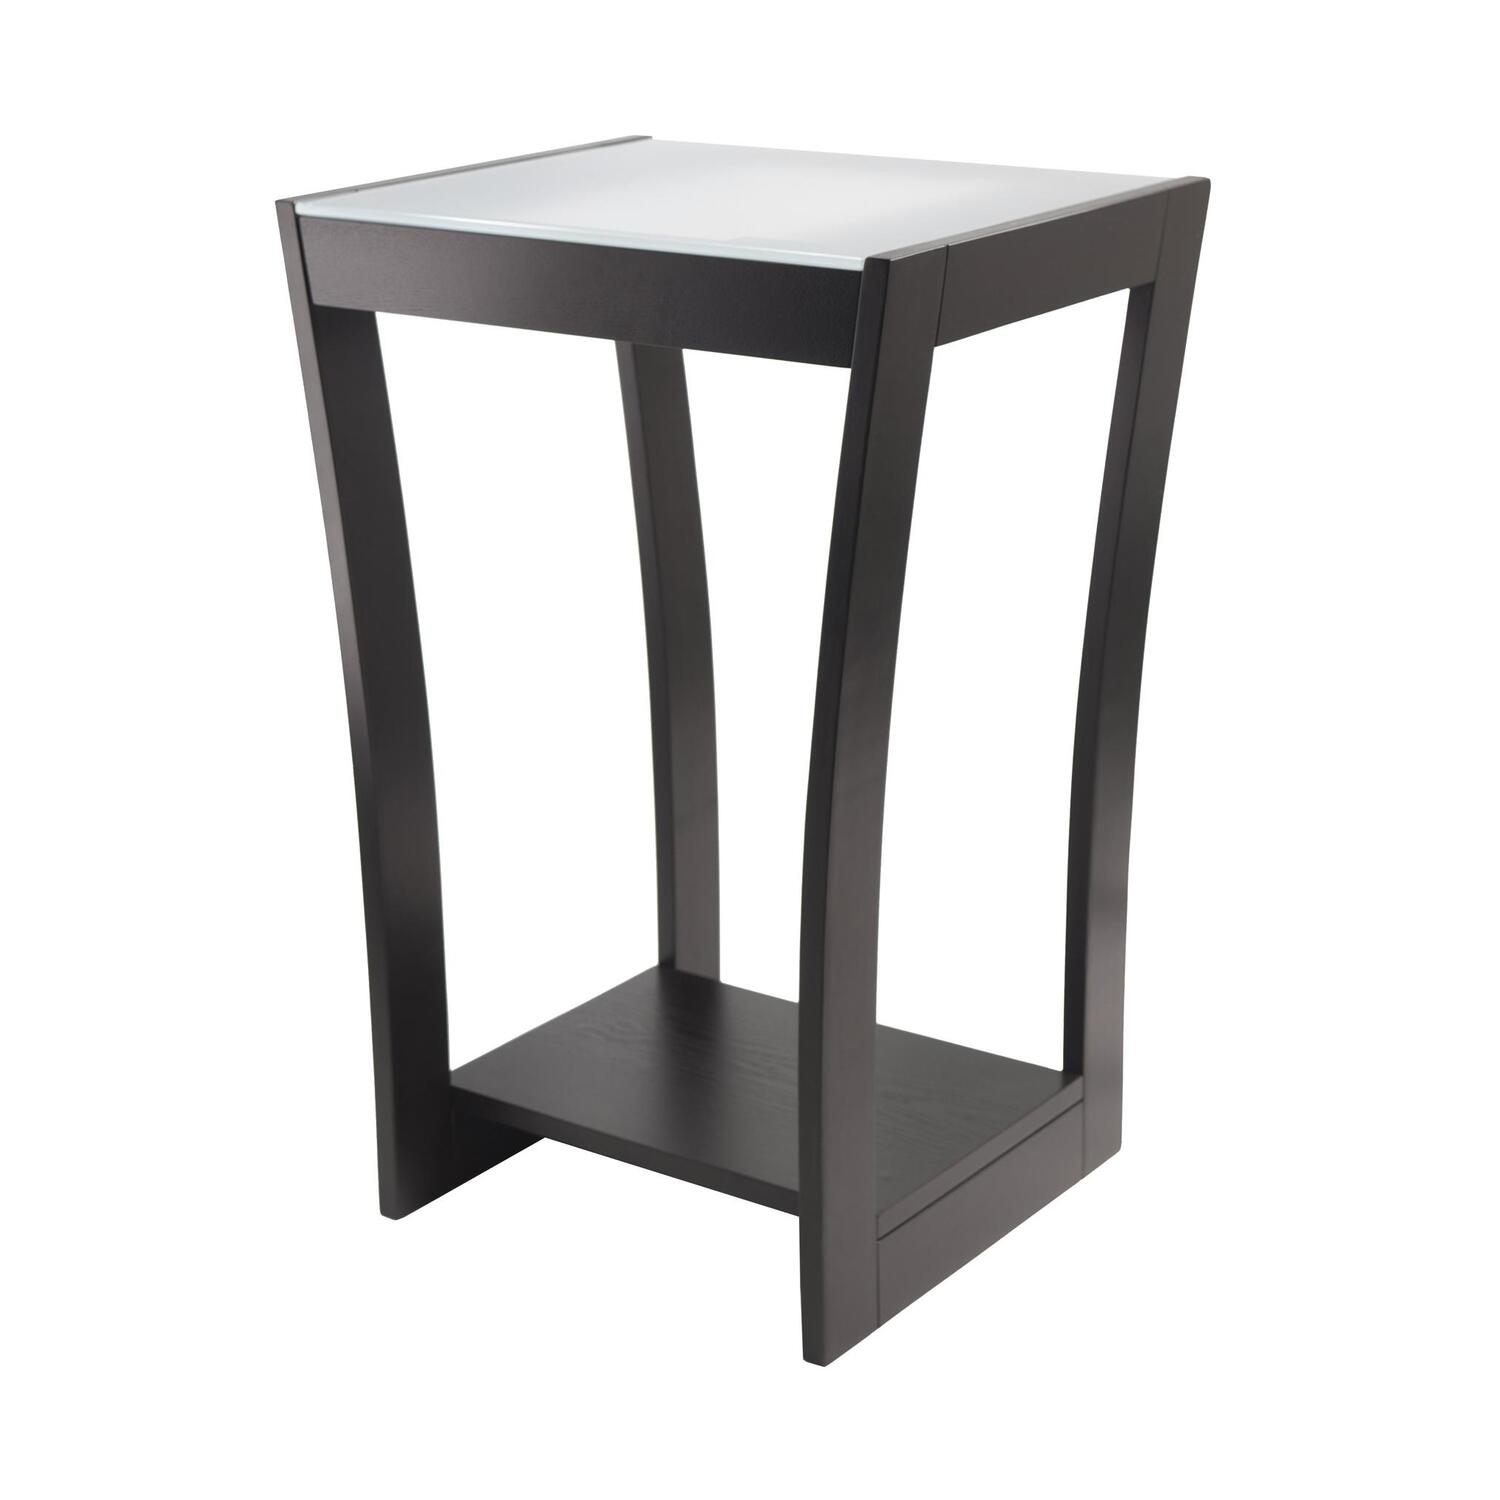 Elegant Radius Accent Side Table With Frosted Glass And Curved Legs   [92011]